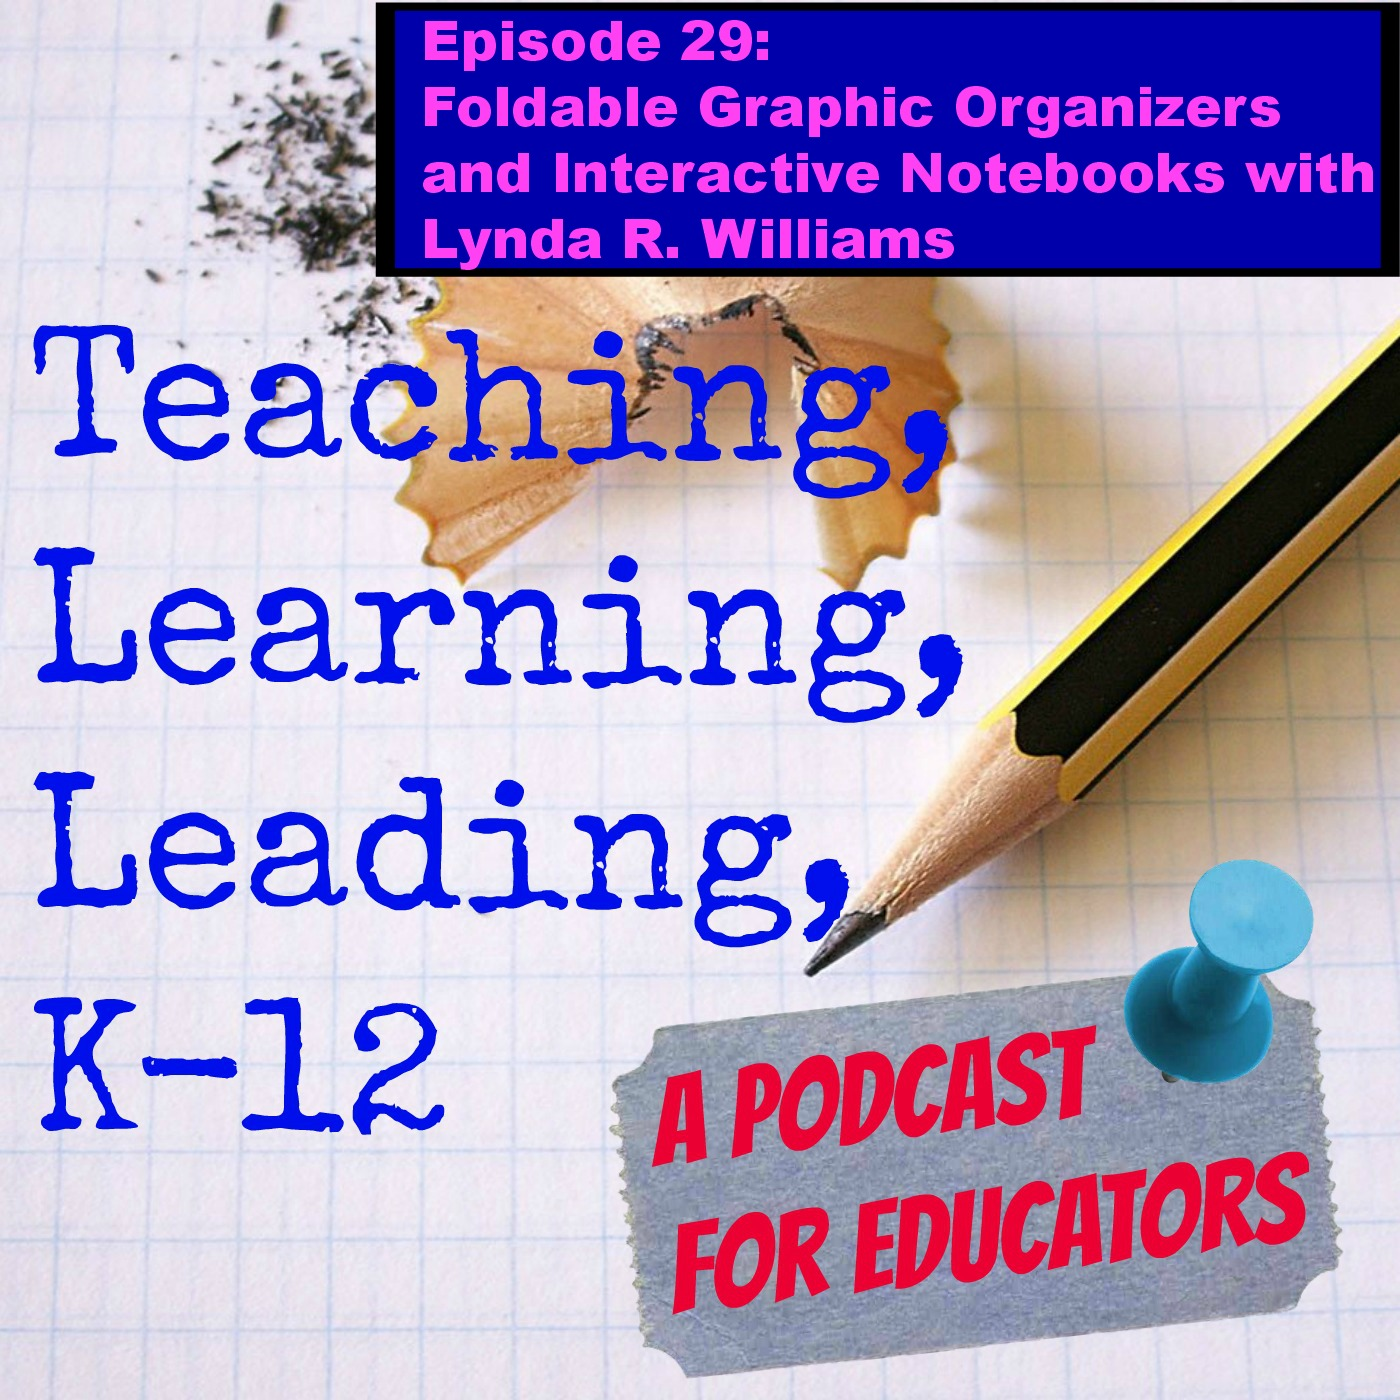 Episode 29: Foldable Graphic Organizers and Interactive Notebooks with Lynda R. Williams